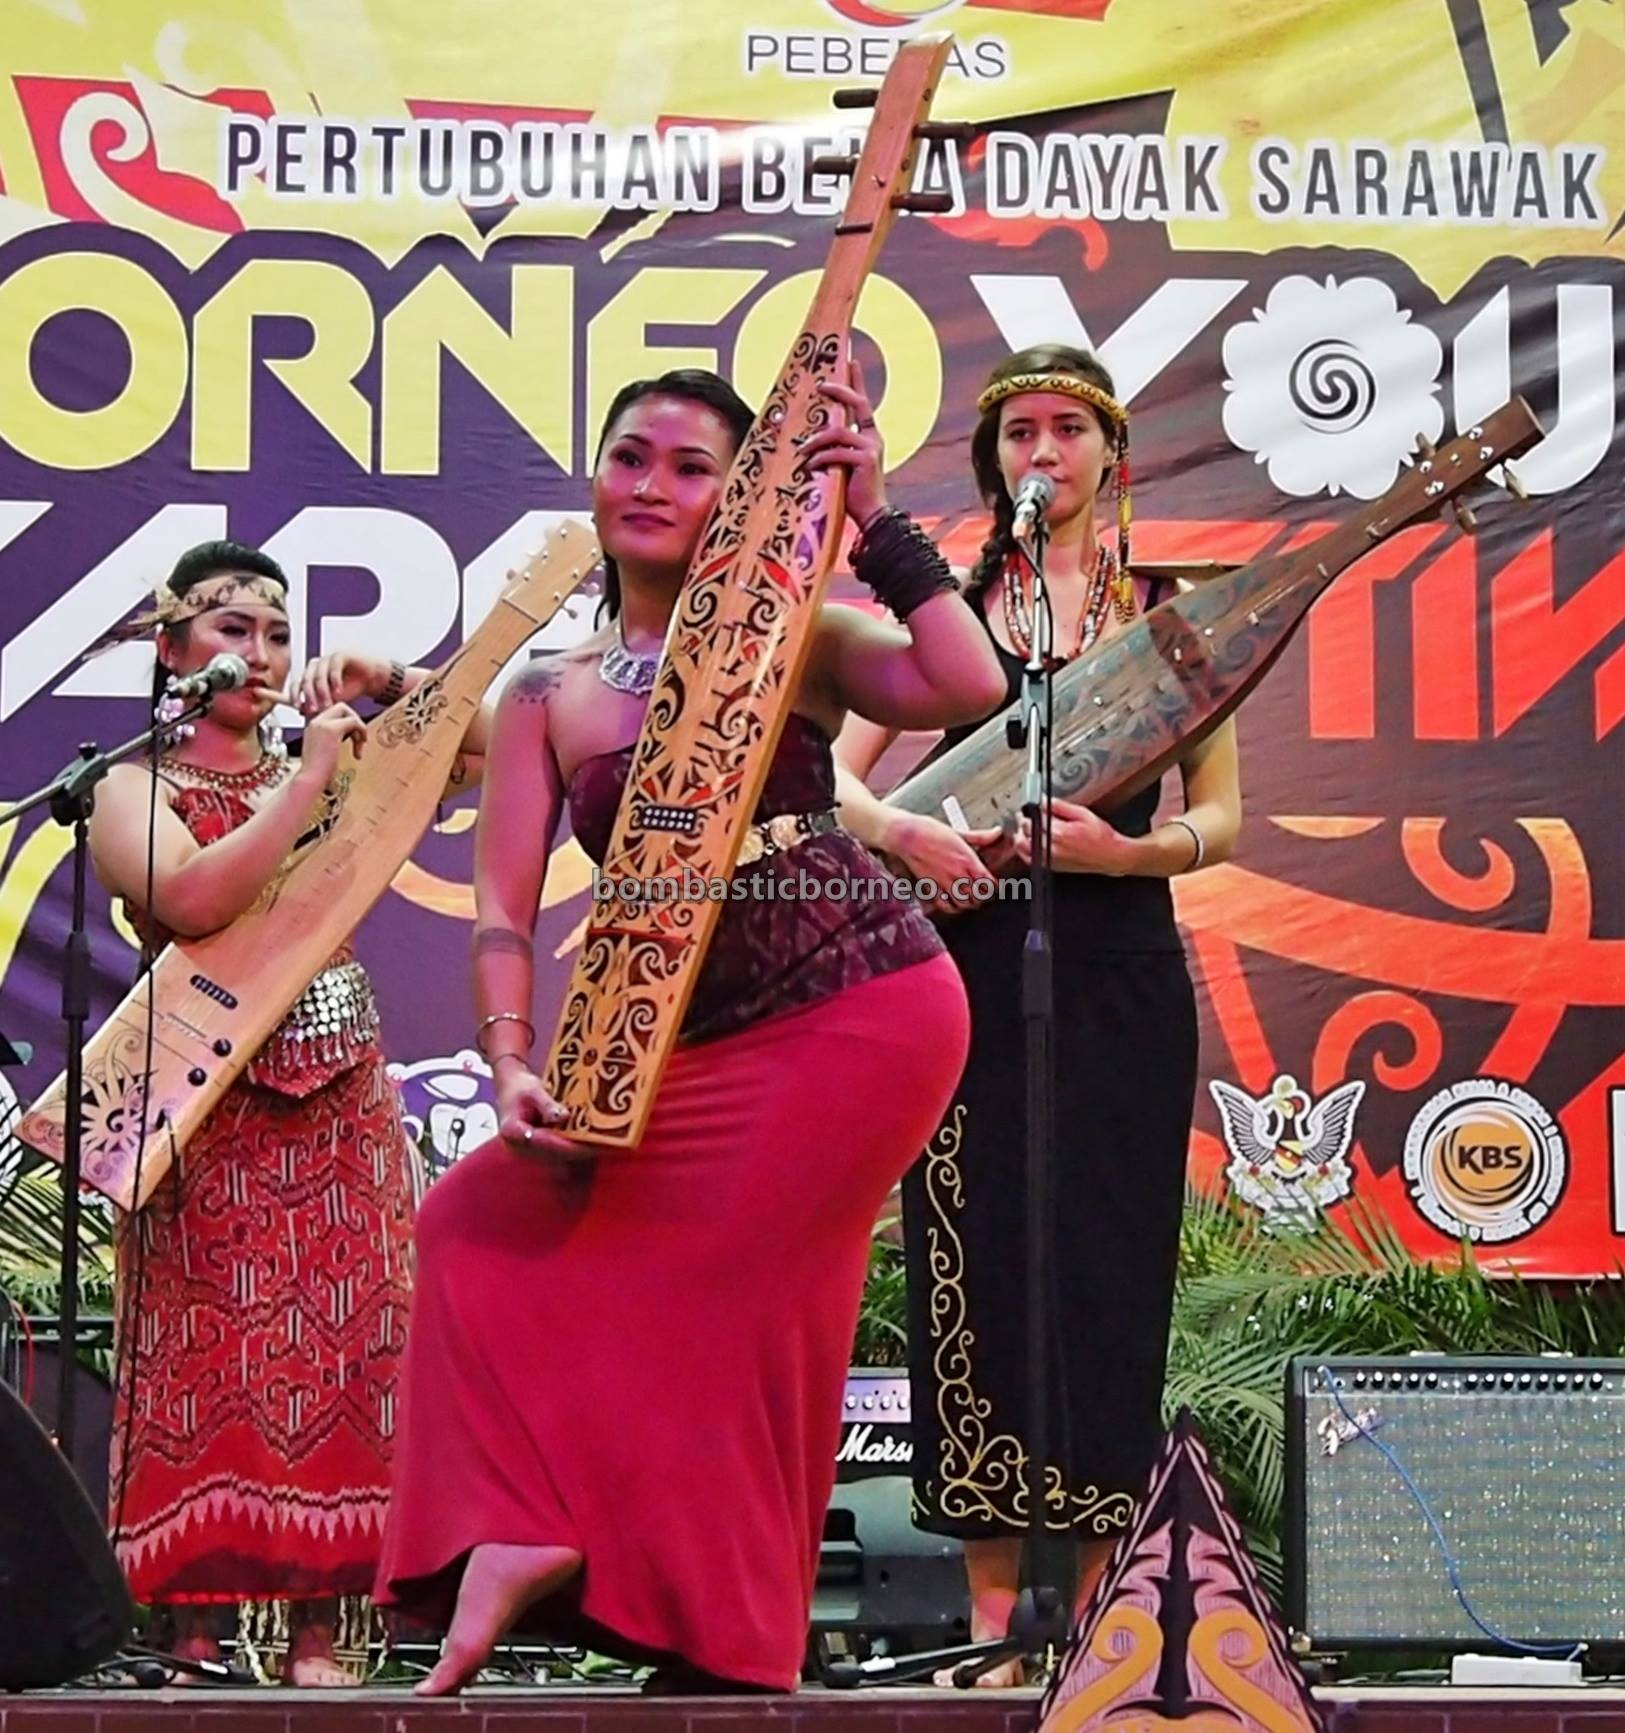 Borneo guitar, Youth Sape Festival, authentic, traditional, culture, event, indigenous, native, tribal, orang ulu, Sarawak, Malaysia, Tourist attraction, travel guide, cross border